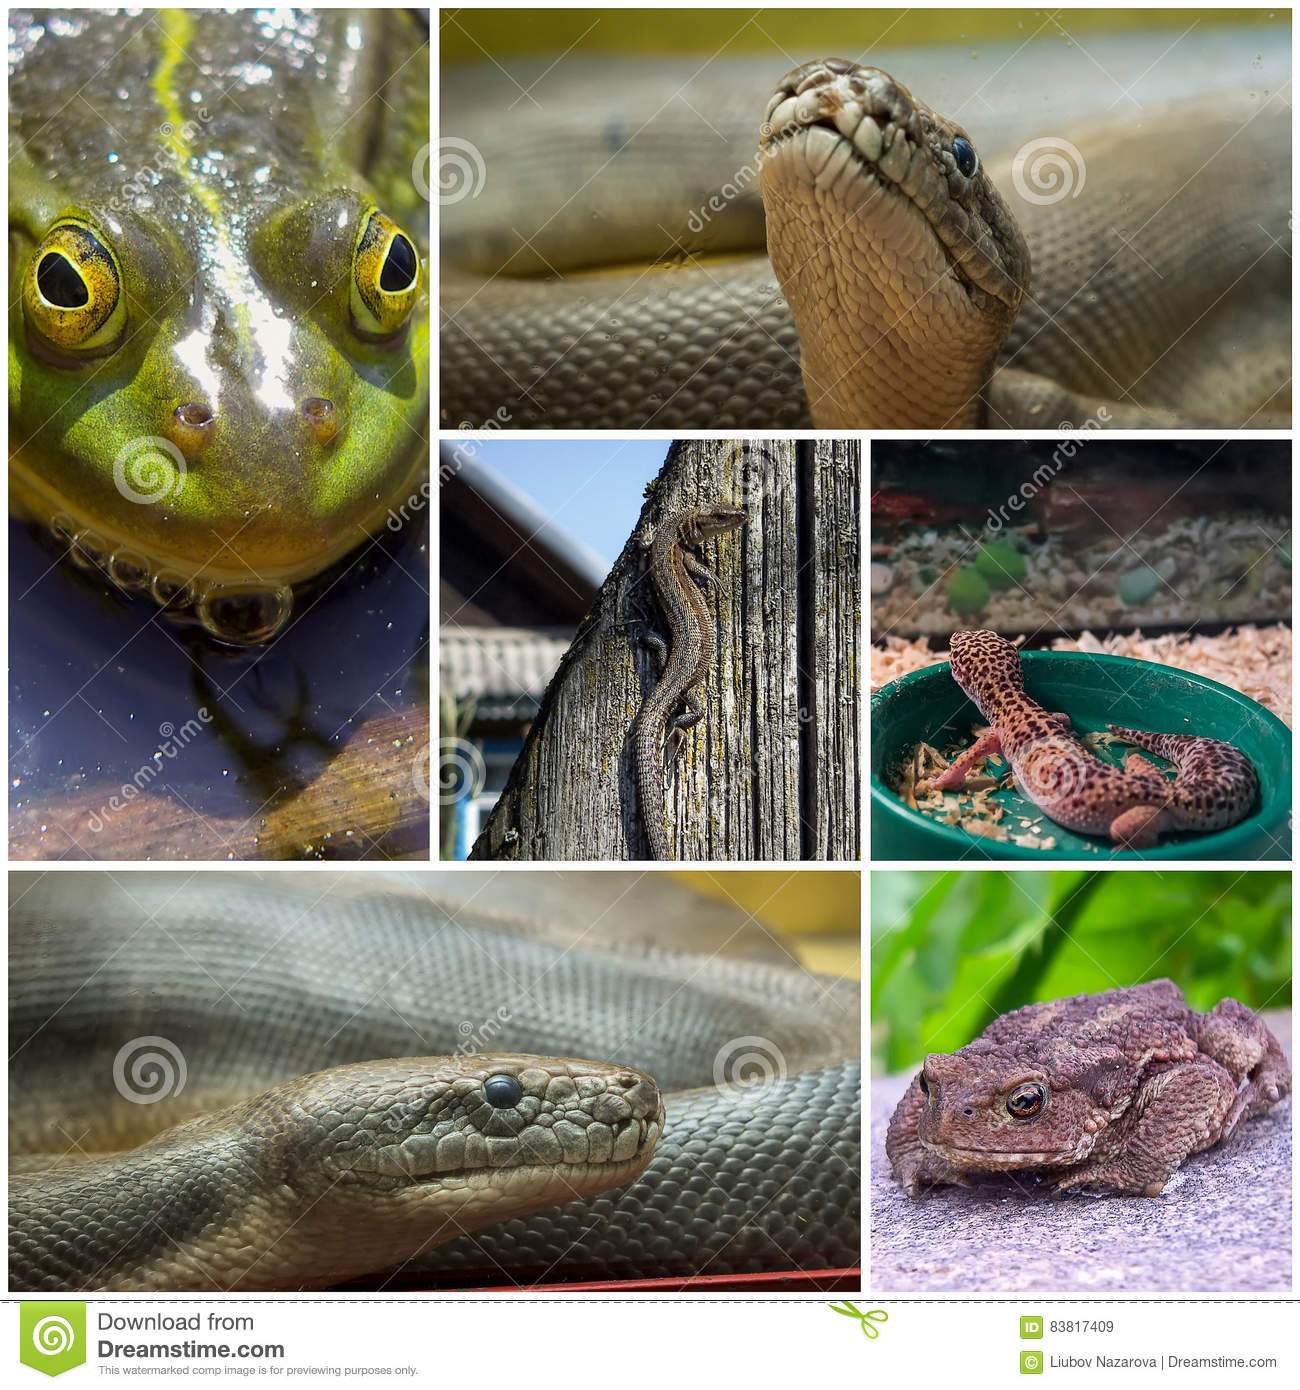 A 2 Z Reptiles Collage With Reptiles ...